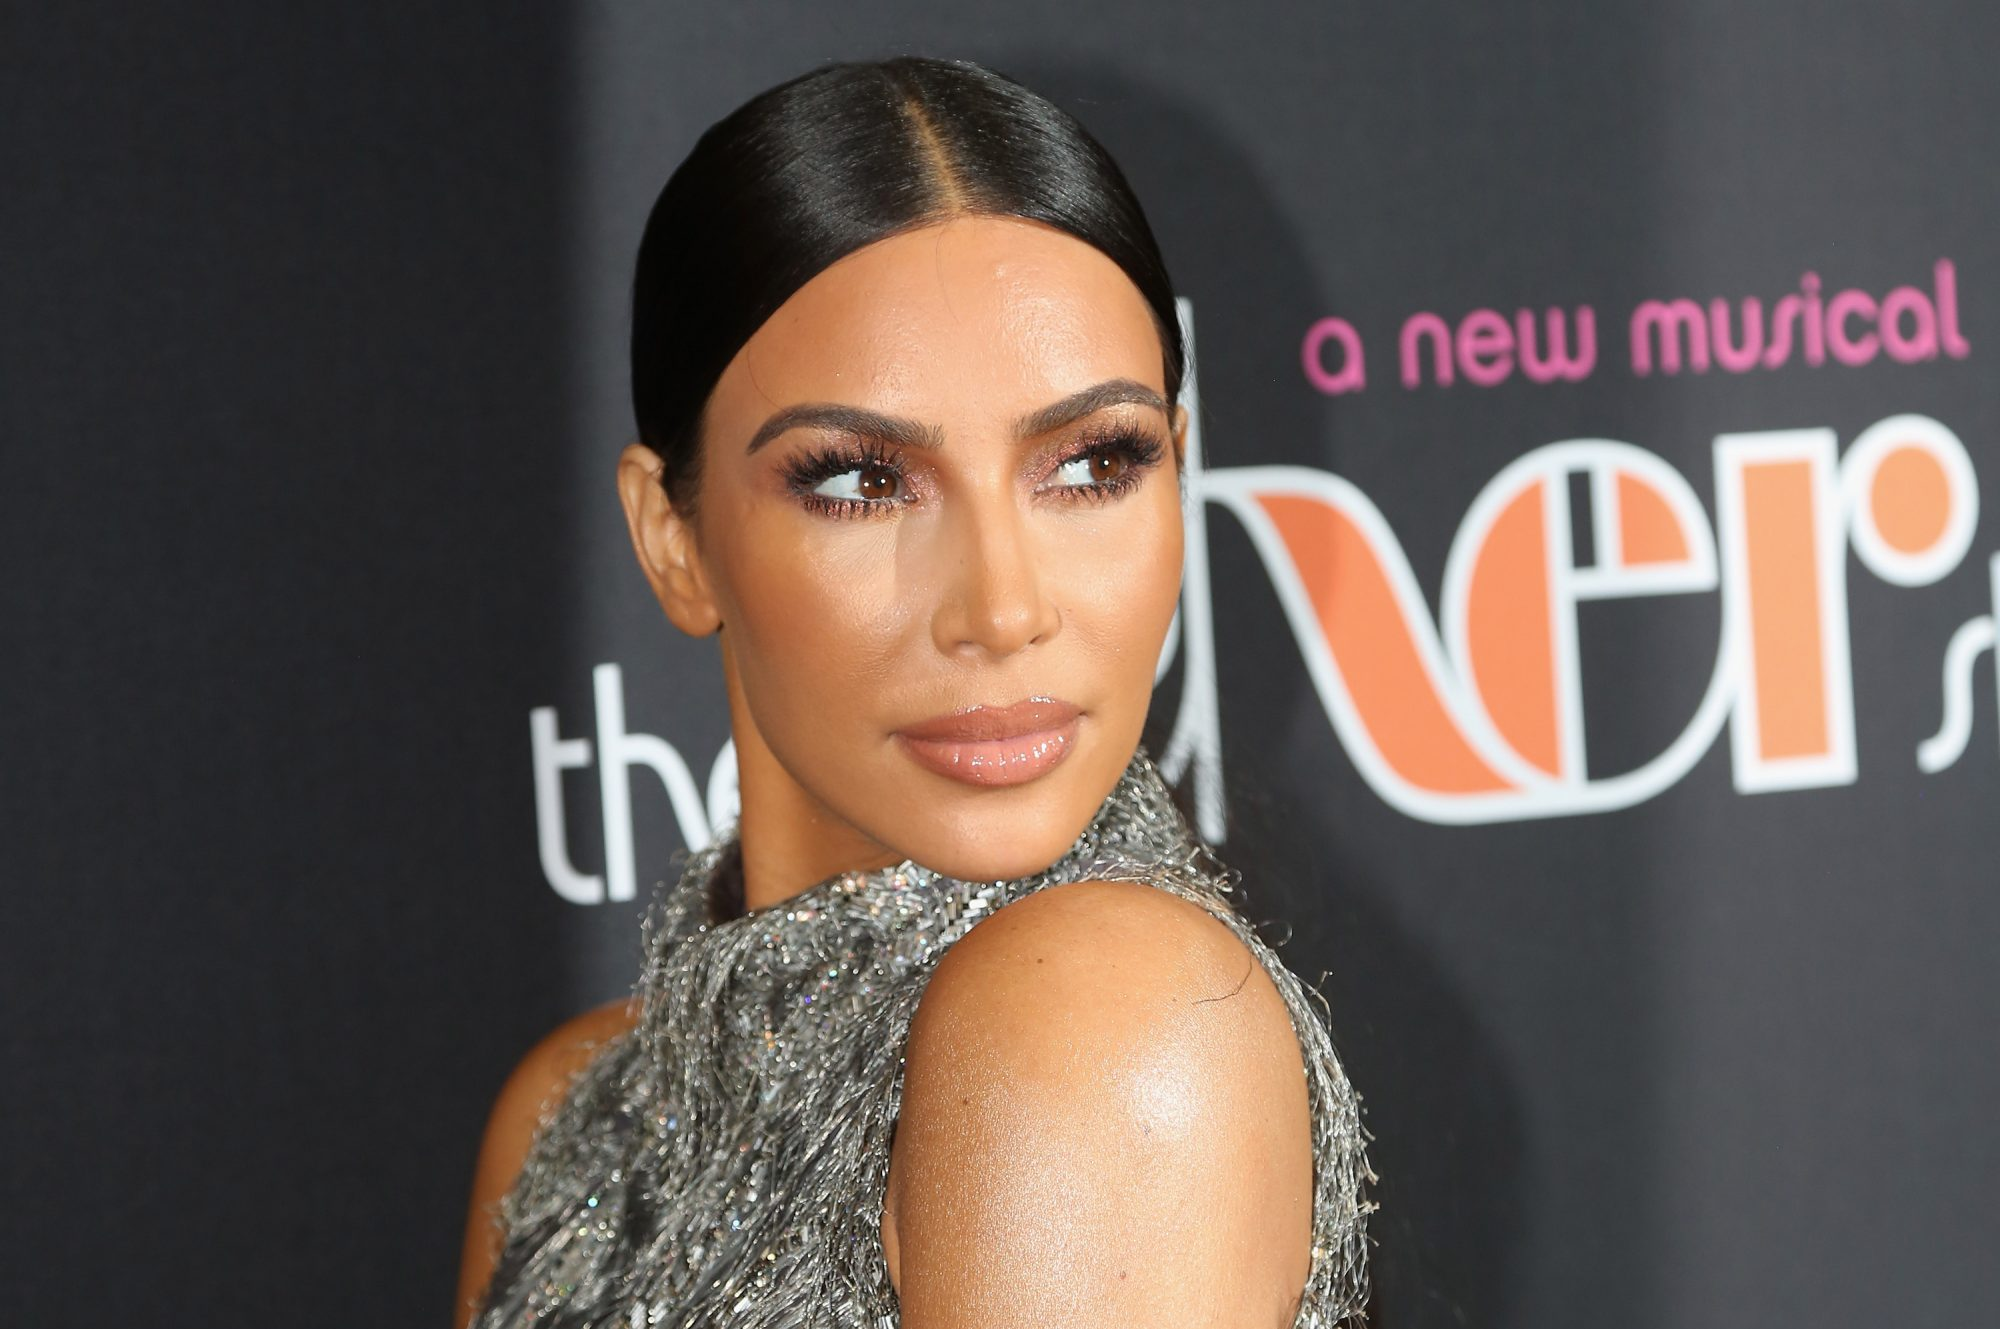 Kim Kardashian Says She Wants Everyone to Stop Focusing on Her Butt 'All the Time'